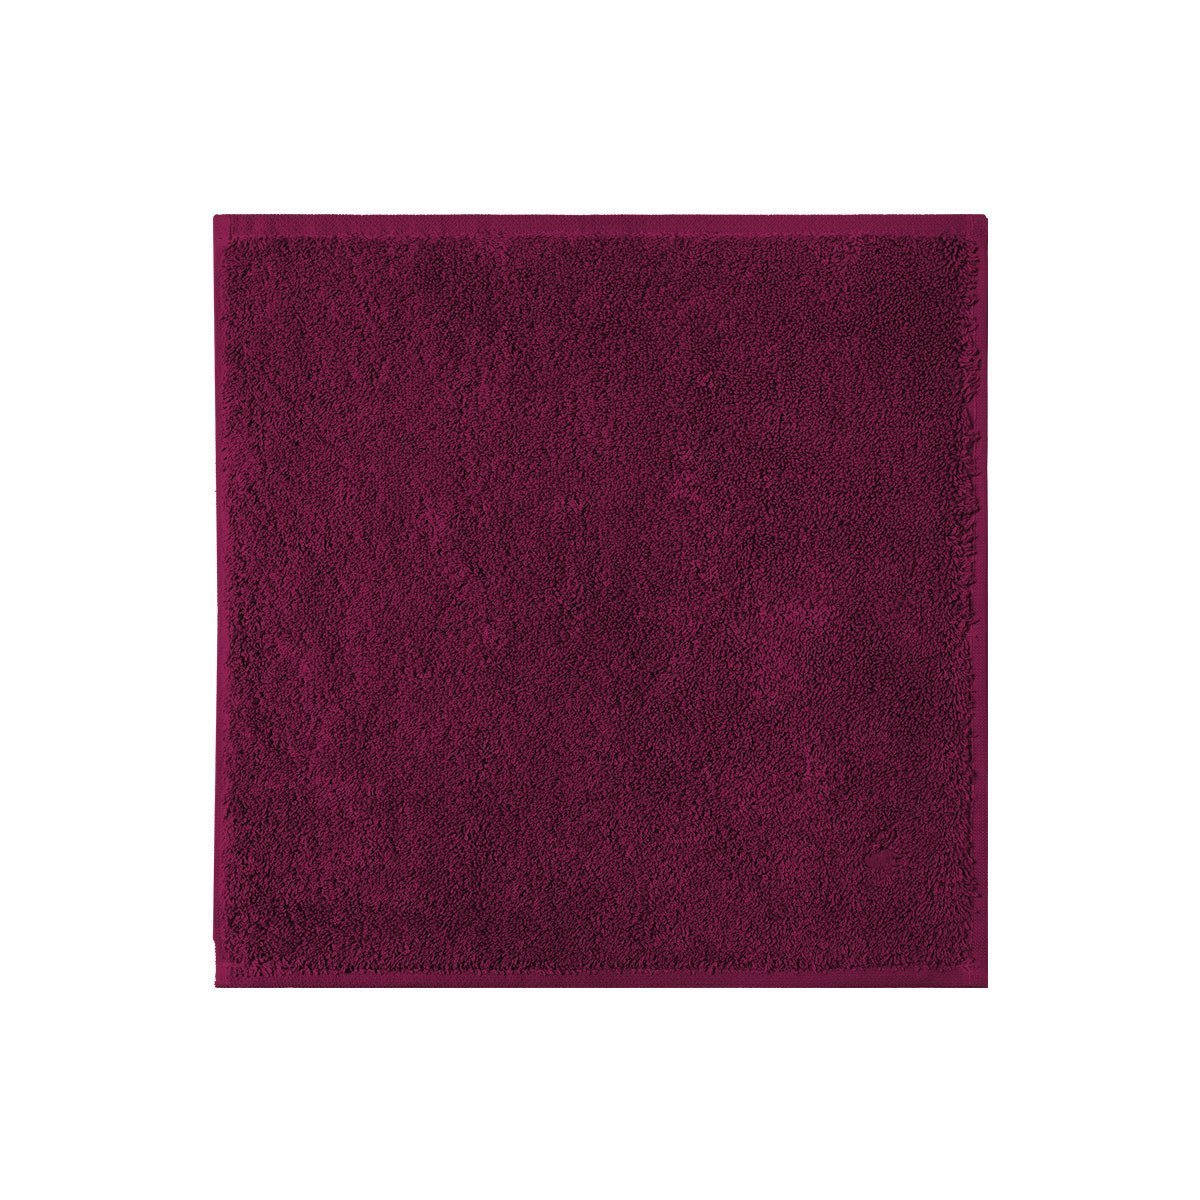 Fig Linens - Etoile Cerise Cranberry Washcloth by Yves Delorme